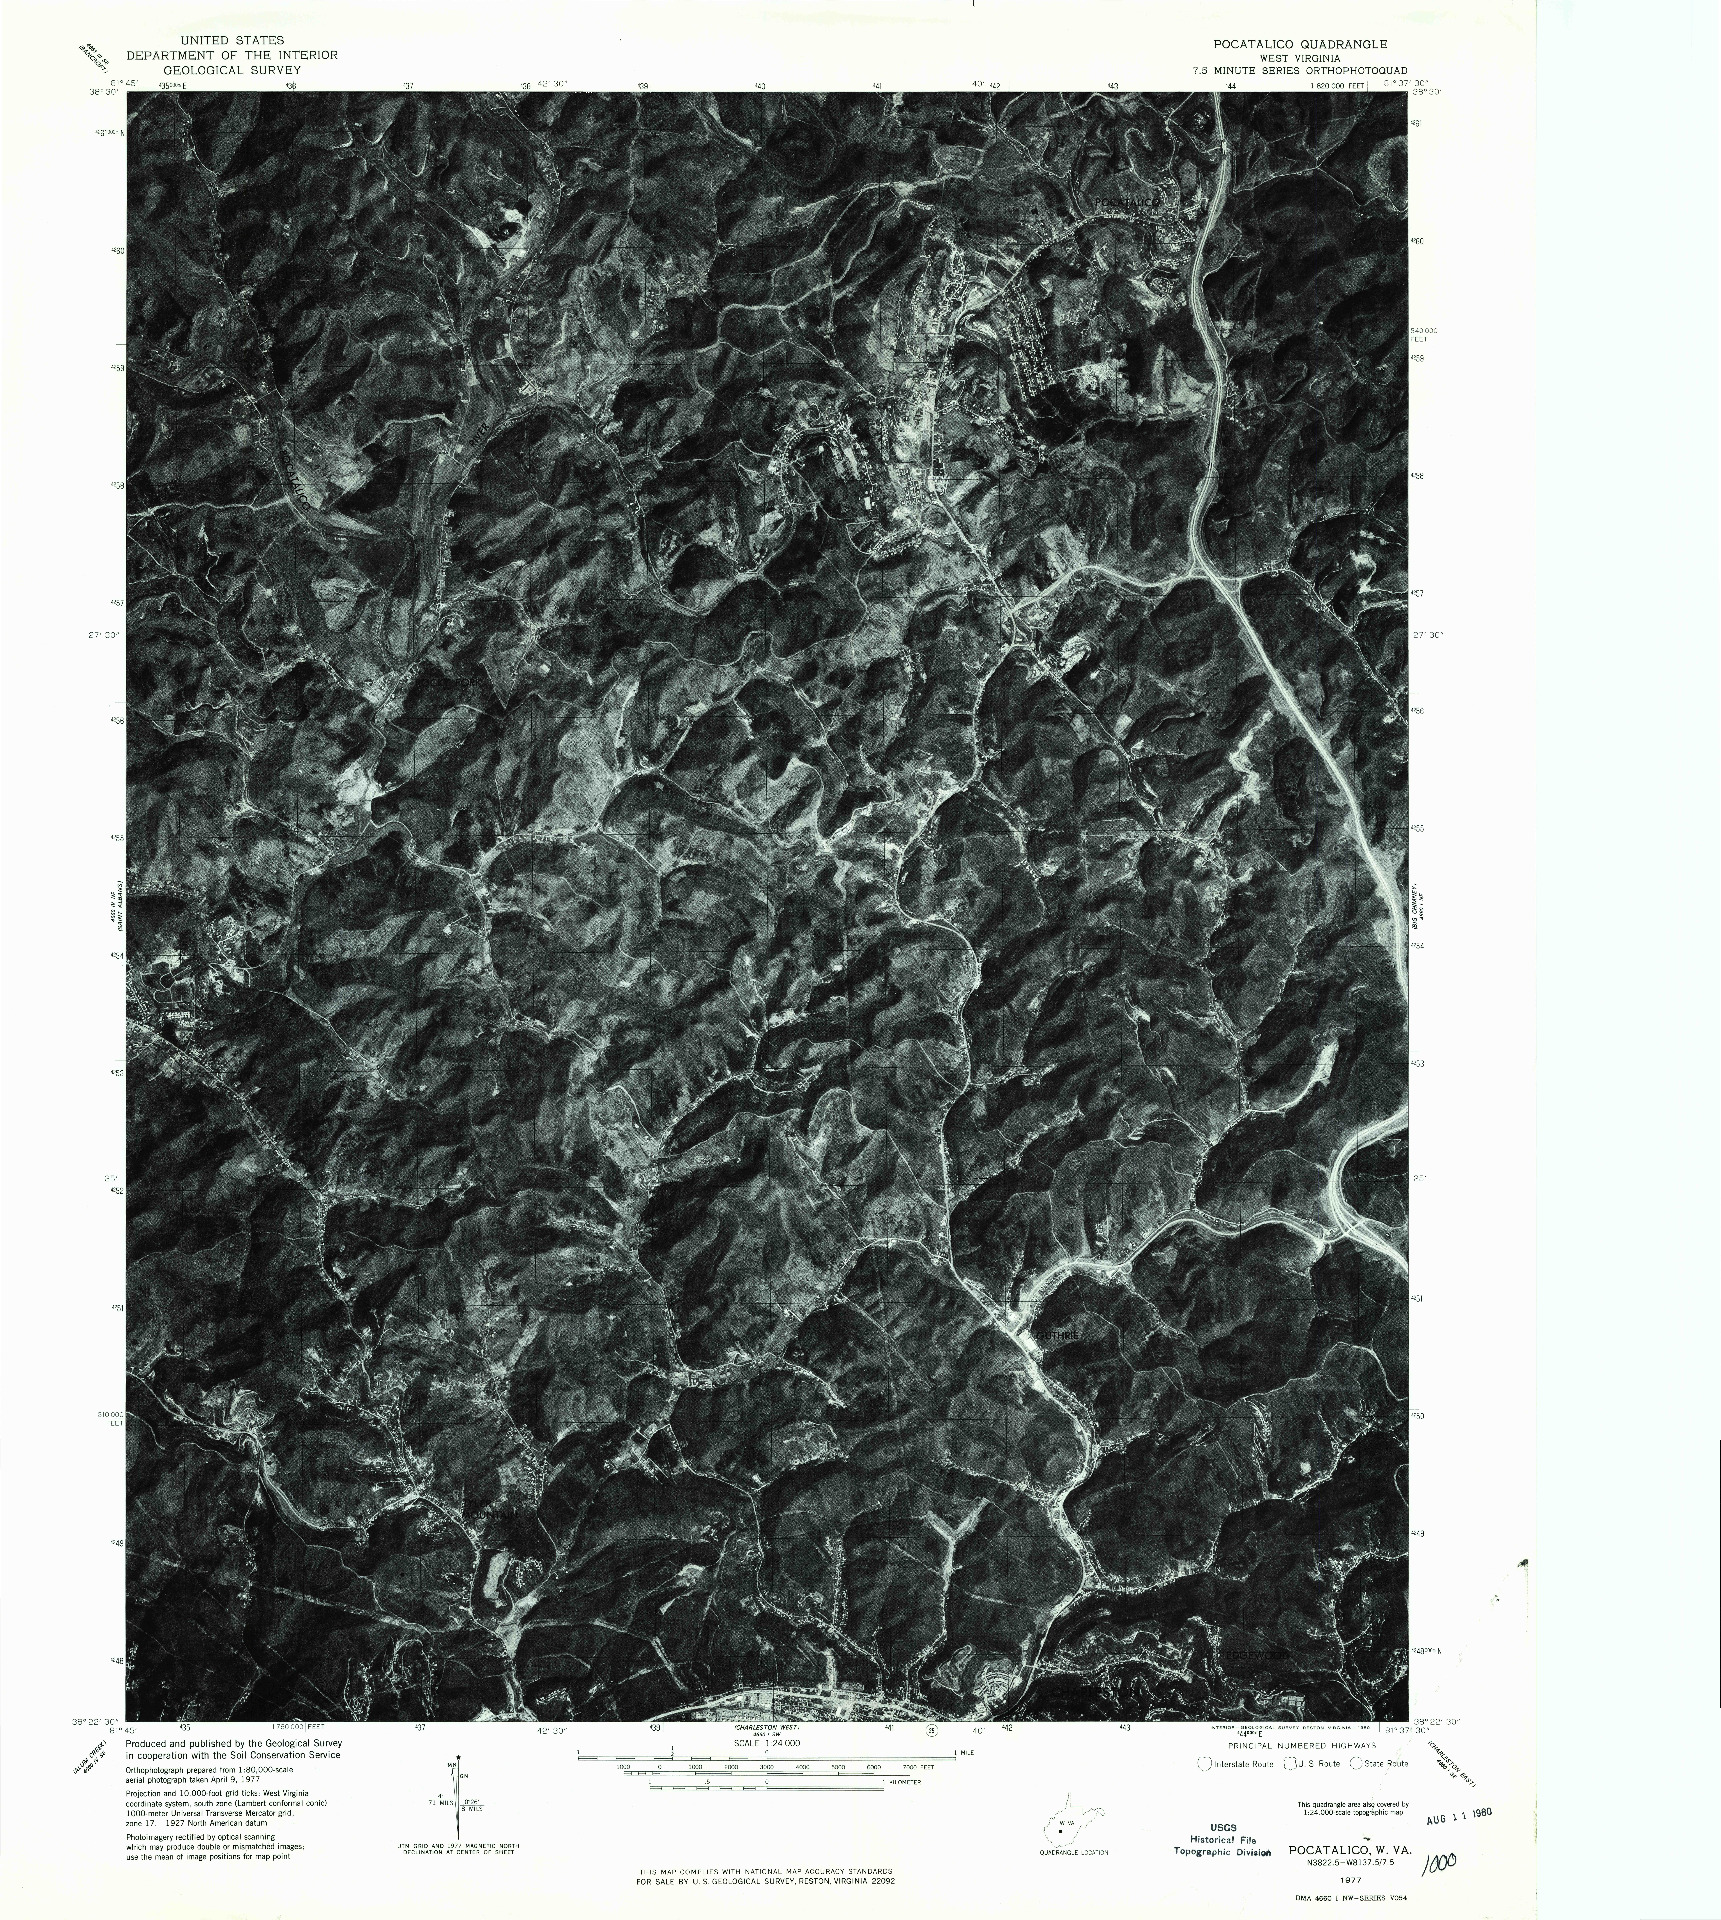 USGS 1:24000-SCALE QUADRANGLE FOR POCATALICO, WV 1977